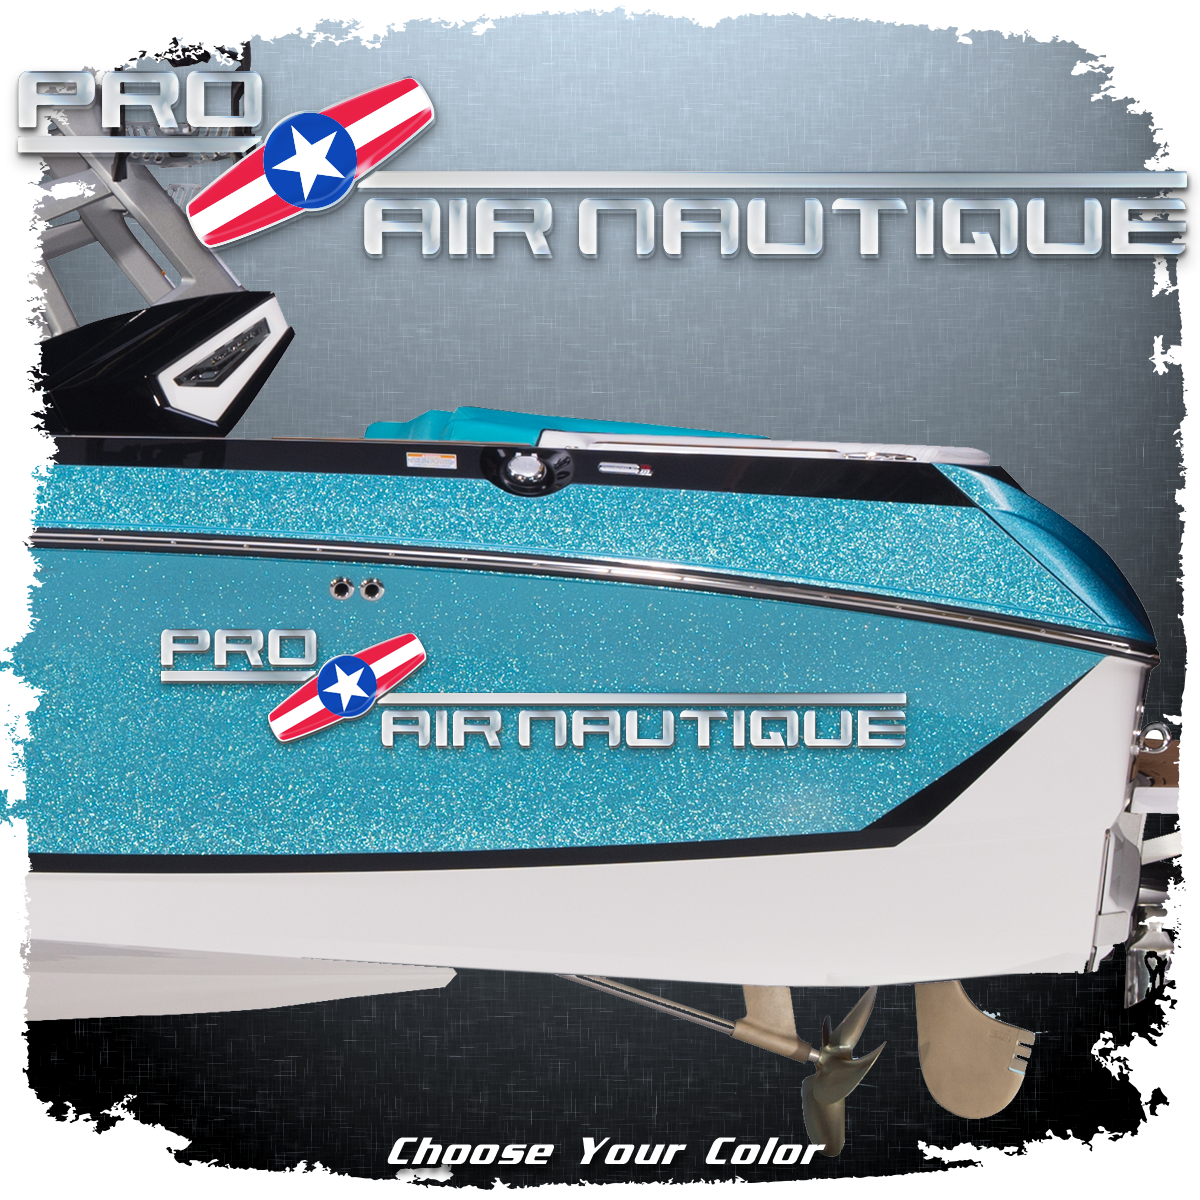 Domed Pro Air Nautique Decal, Choose Your Color (1 included)